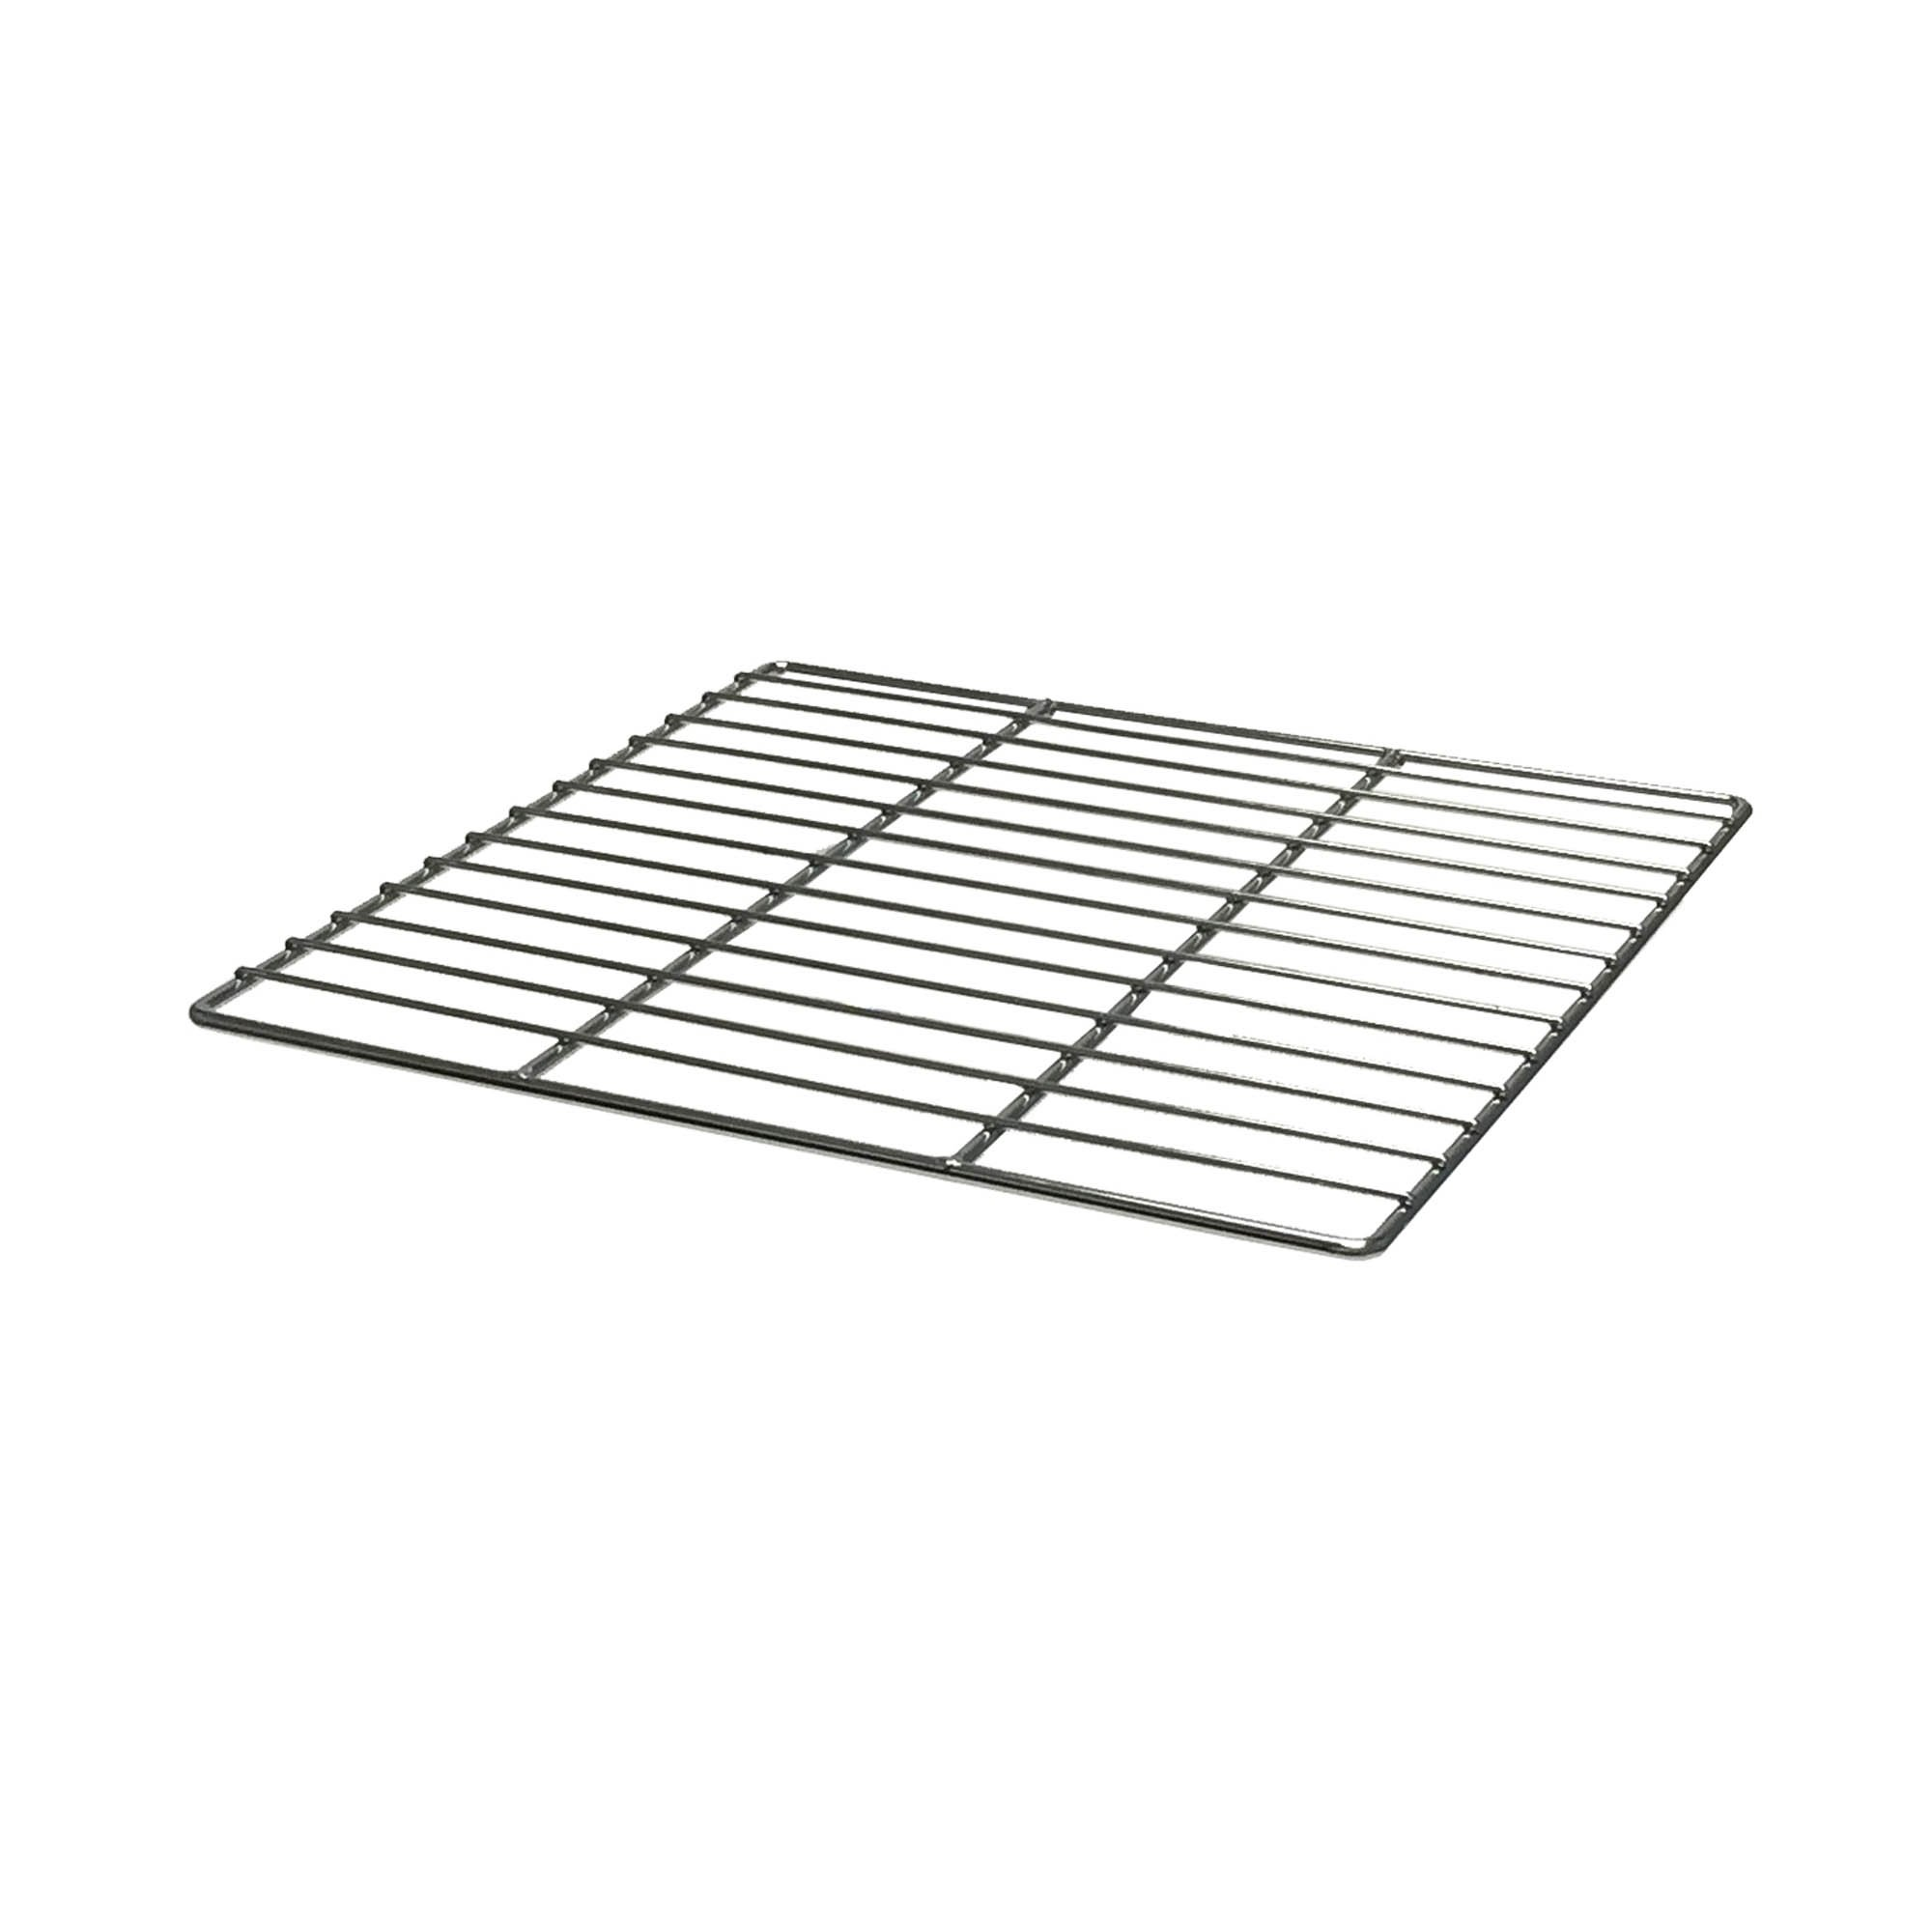 Extra Shelf, stainless steel for H2505-70